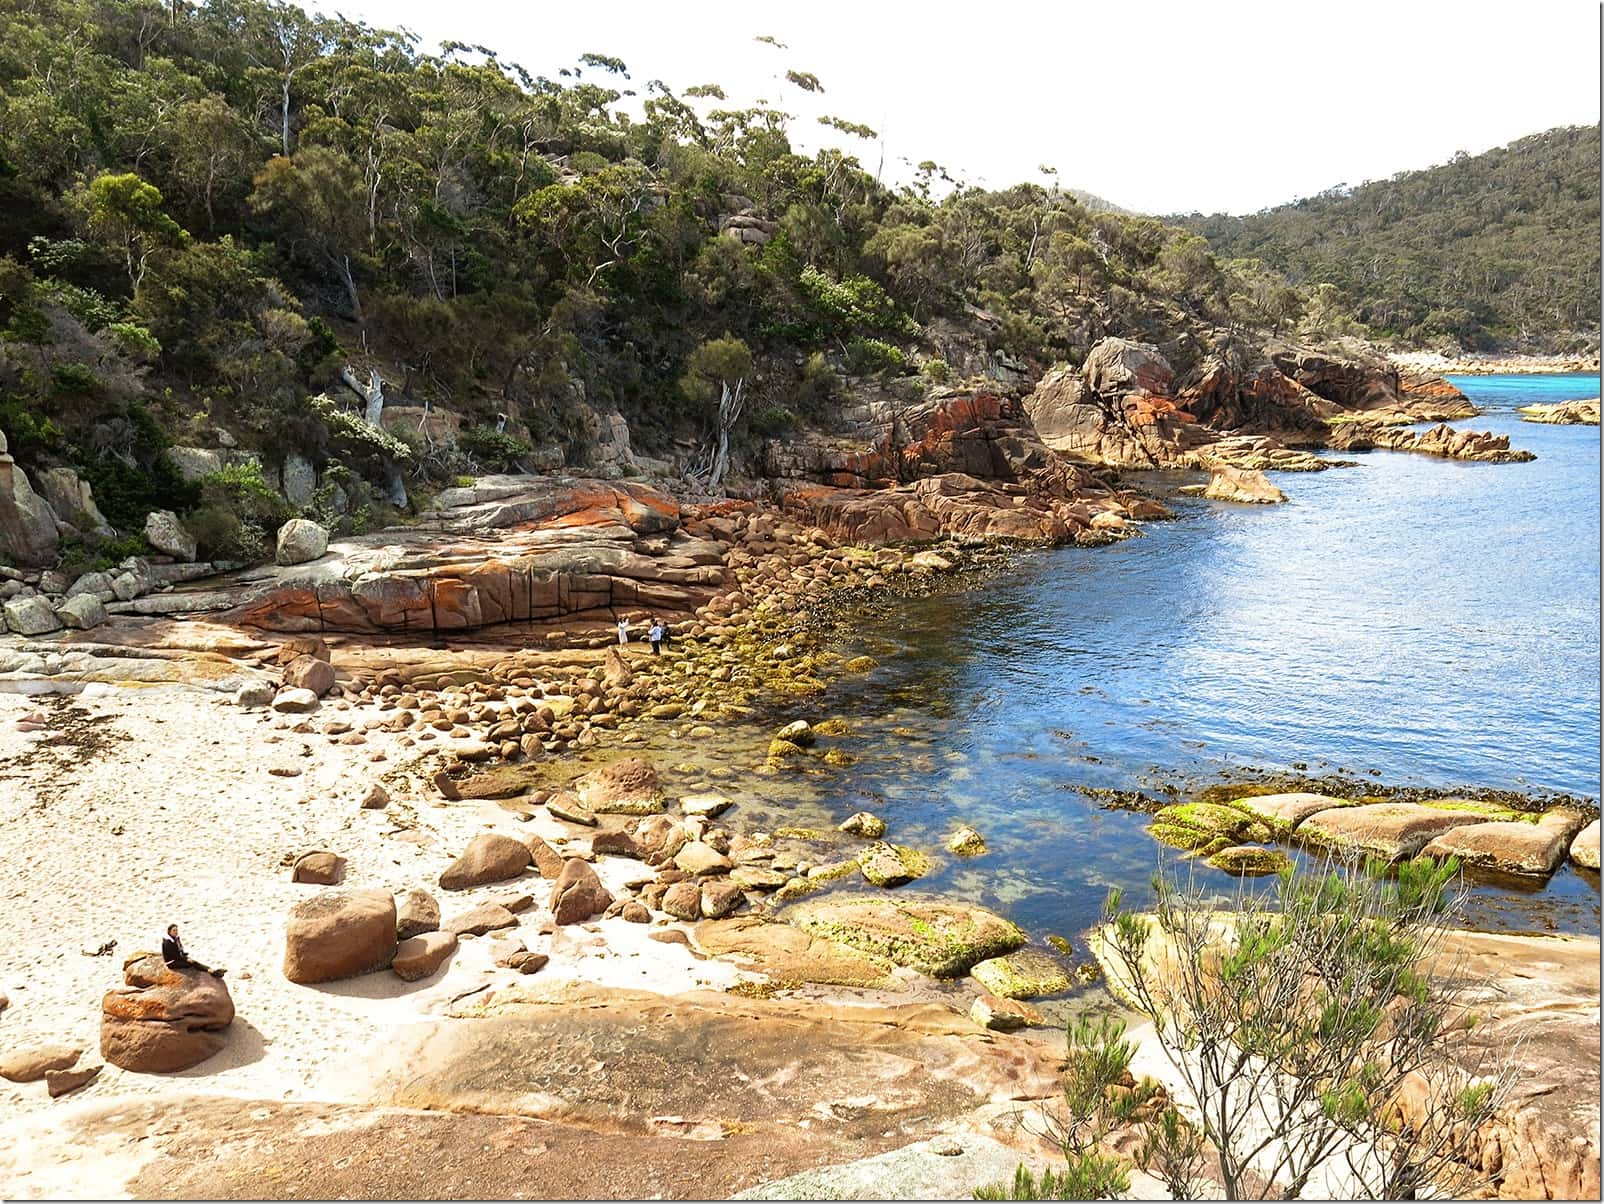 Sleepy-Bay-and-Gravelly-Beach-Freycinet-National-Park-Wanderlust-Storytellers-(2)